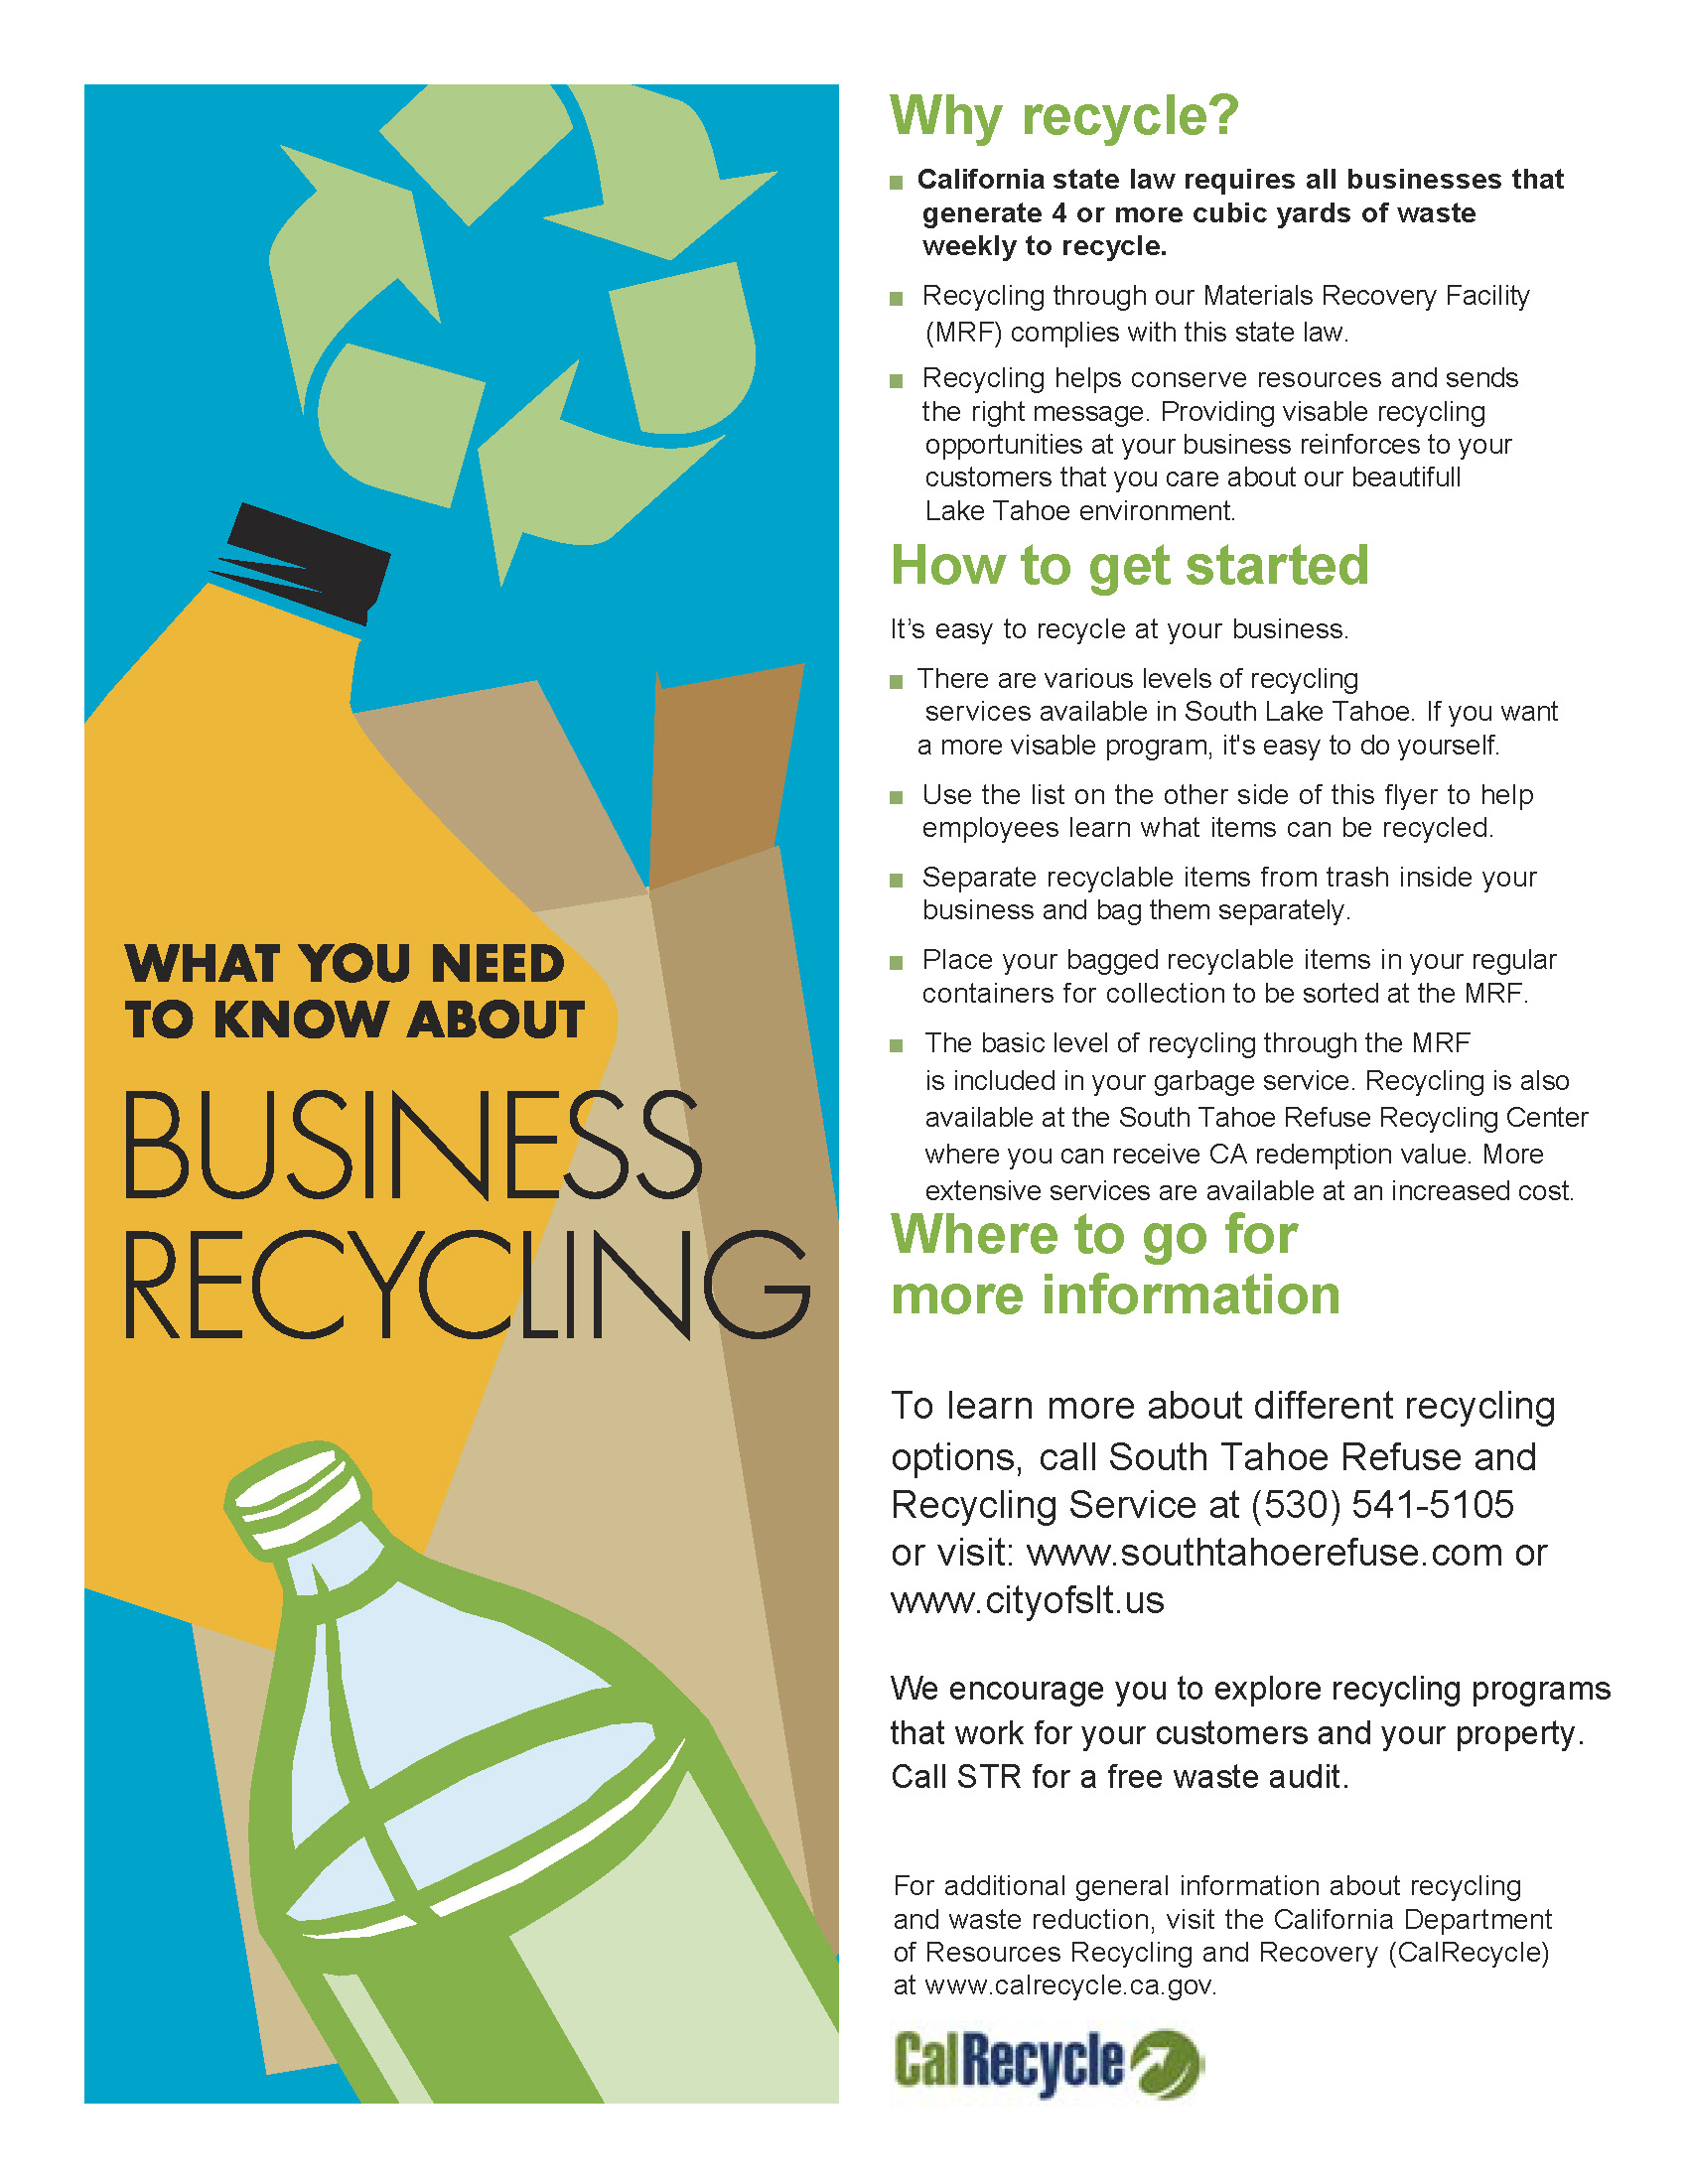 Business Recycling flyer